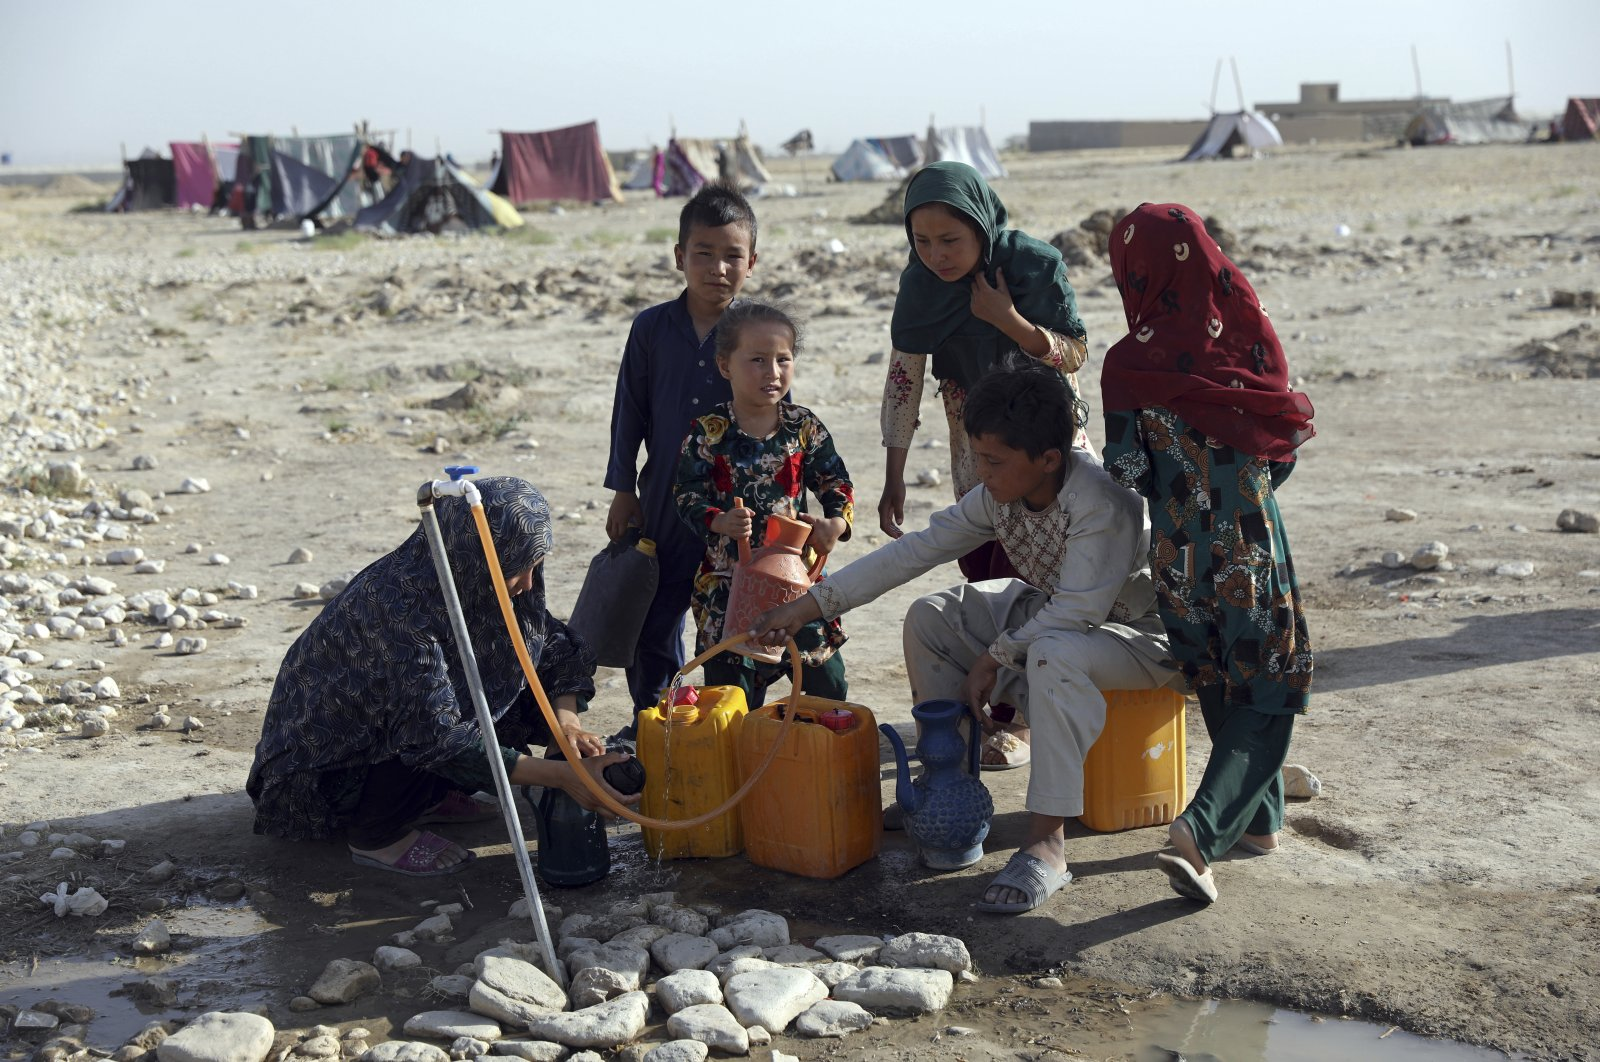 Internally displaced Afghans, who fled their home due to fighting between the Taliban and Afghan security personnel, fill water containers from a public water tap at a camp on the outskirts of Mazar-e-Sharif, northern Afghanistan, July 8, 2021. (AP Photo)